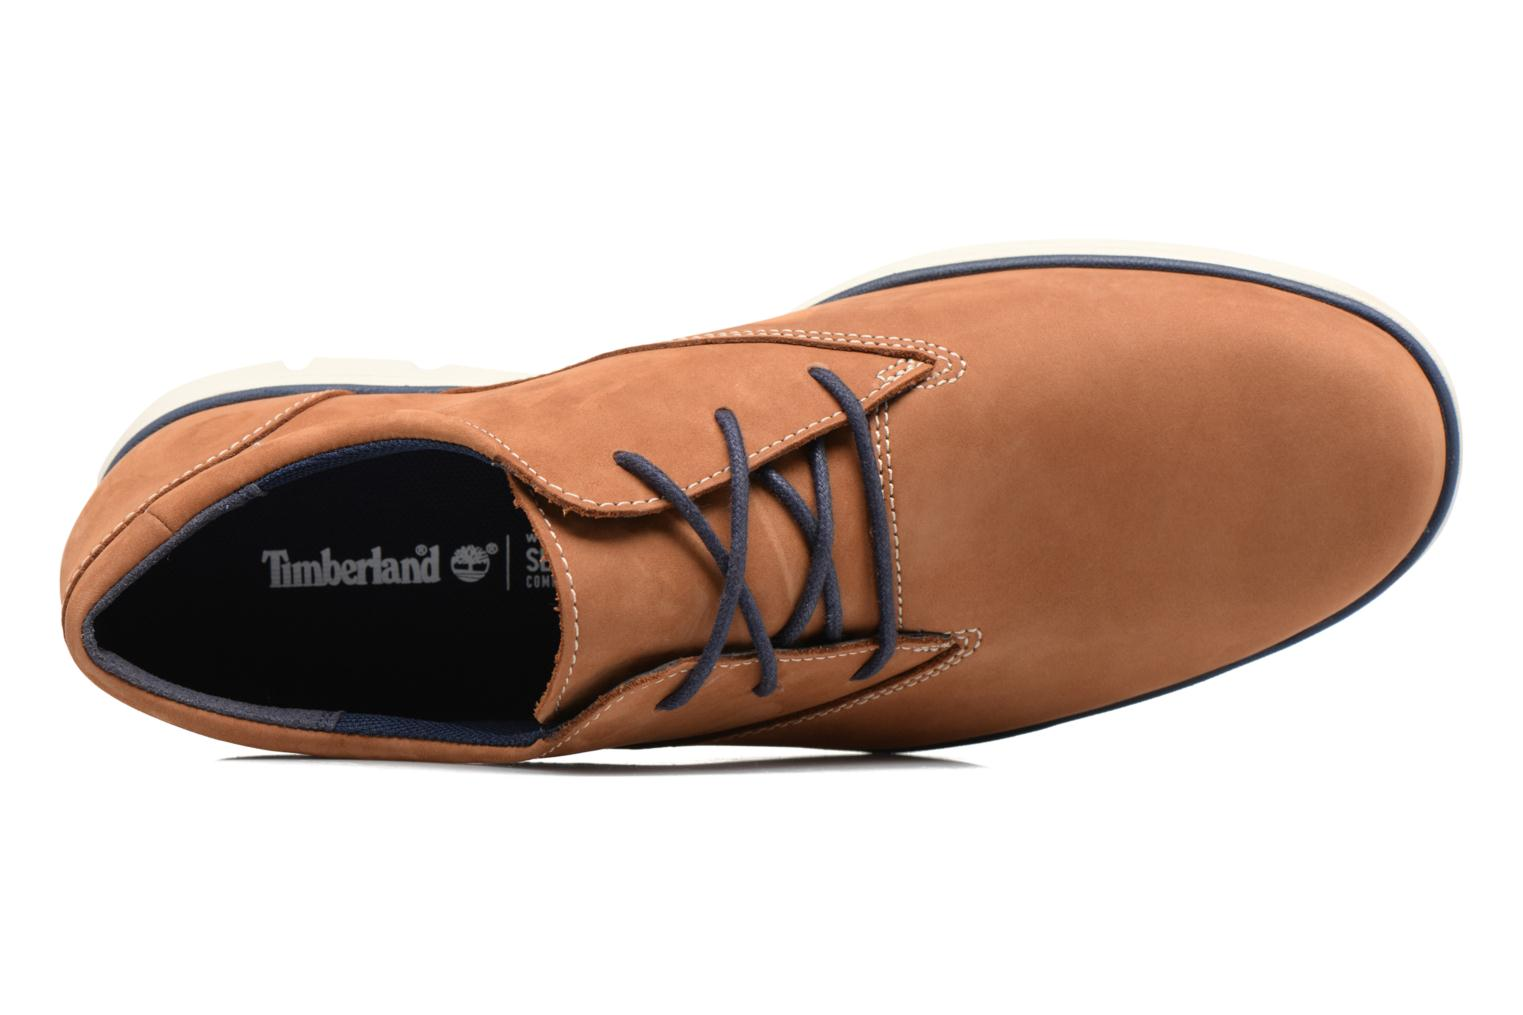 Lace-up shoes Timberland Bradstreet PT Oxford Beige view from the left